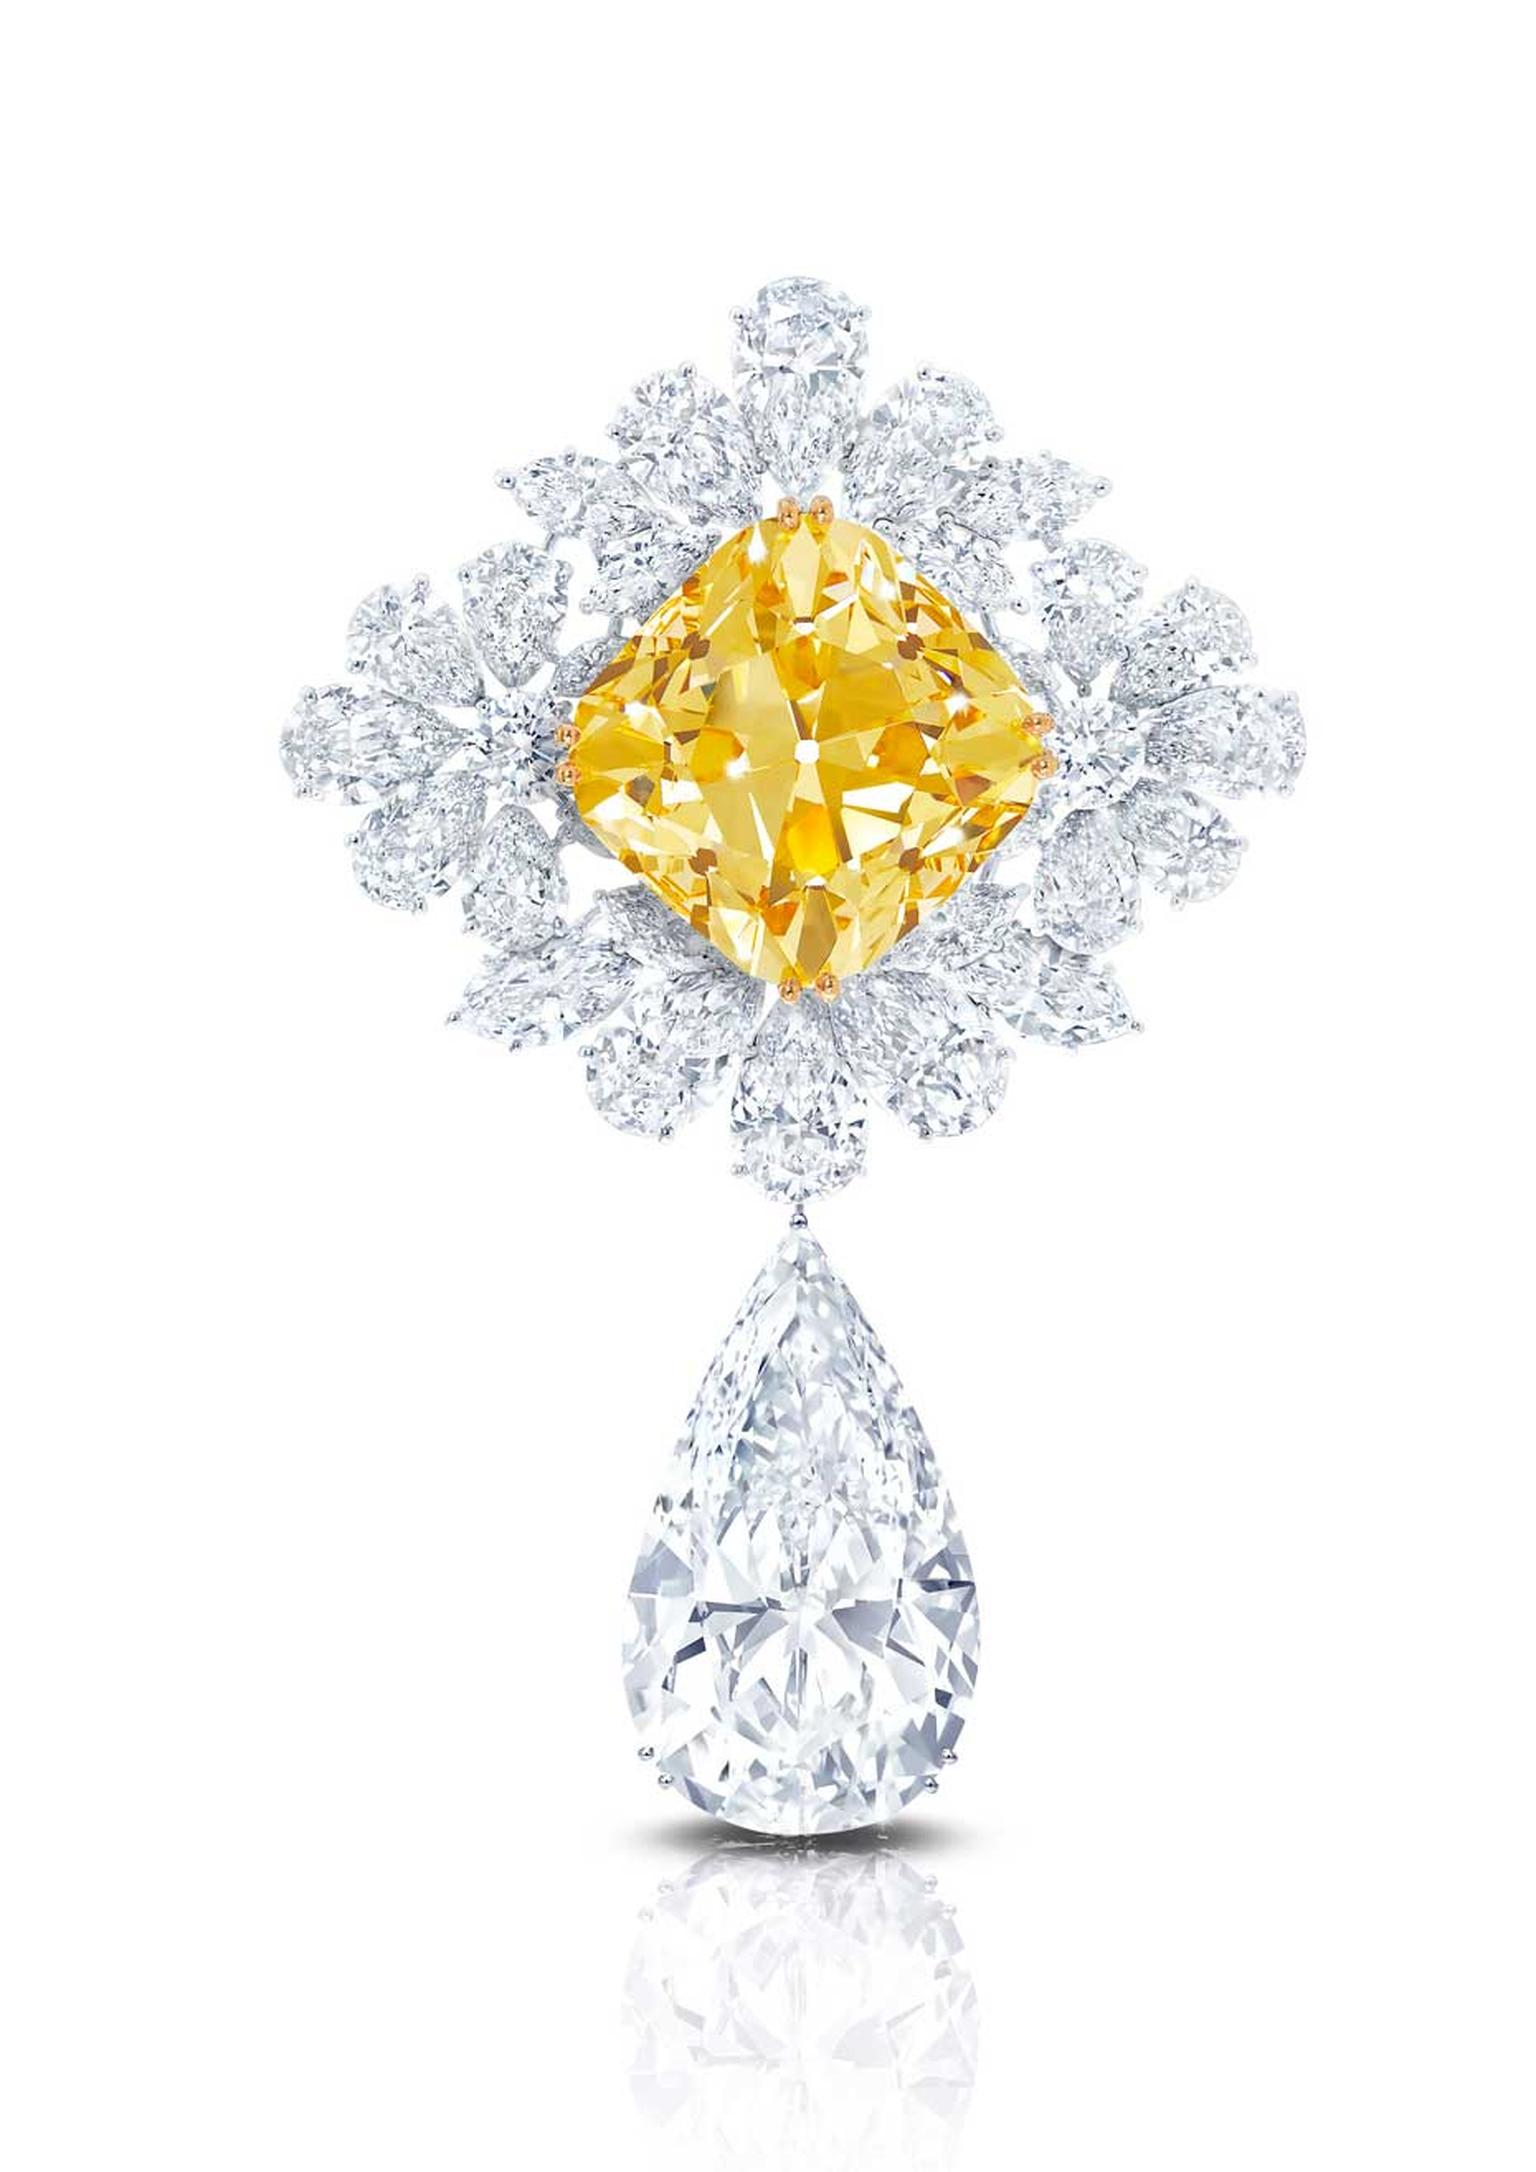 The Graff Royal Star of Paris - set with over 200ct of diamonds - is believed to be the most valuable brooch ever created.